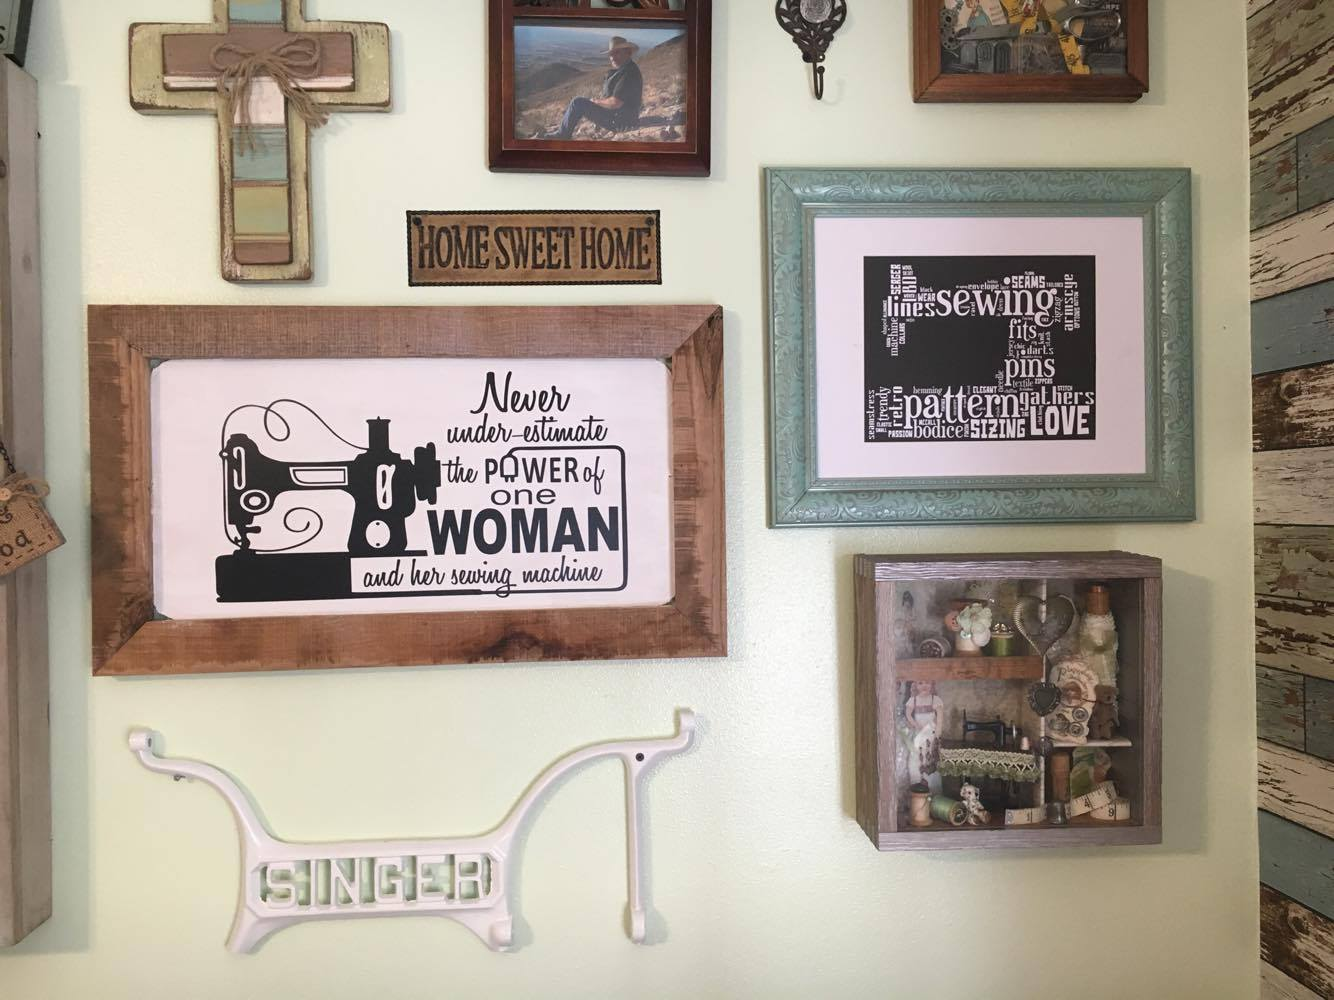 custom-wall-decal-stickers-for-sewing-room-never-underestimate-the-power.jpg